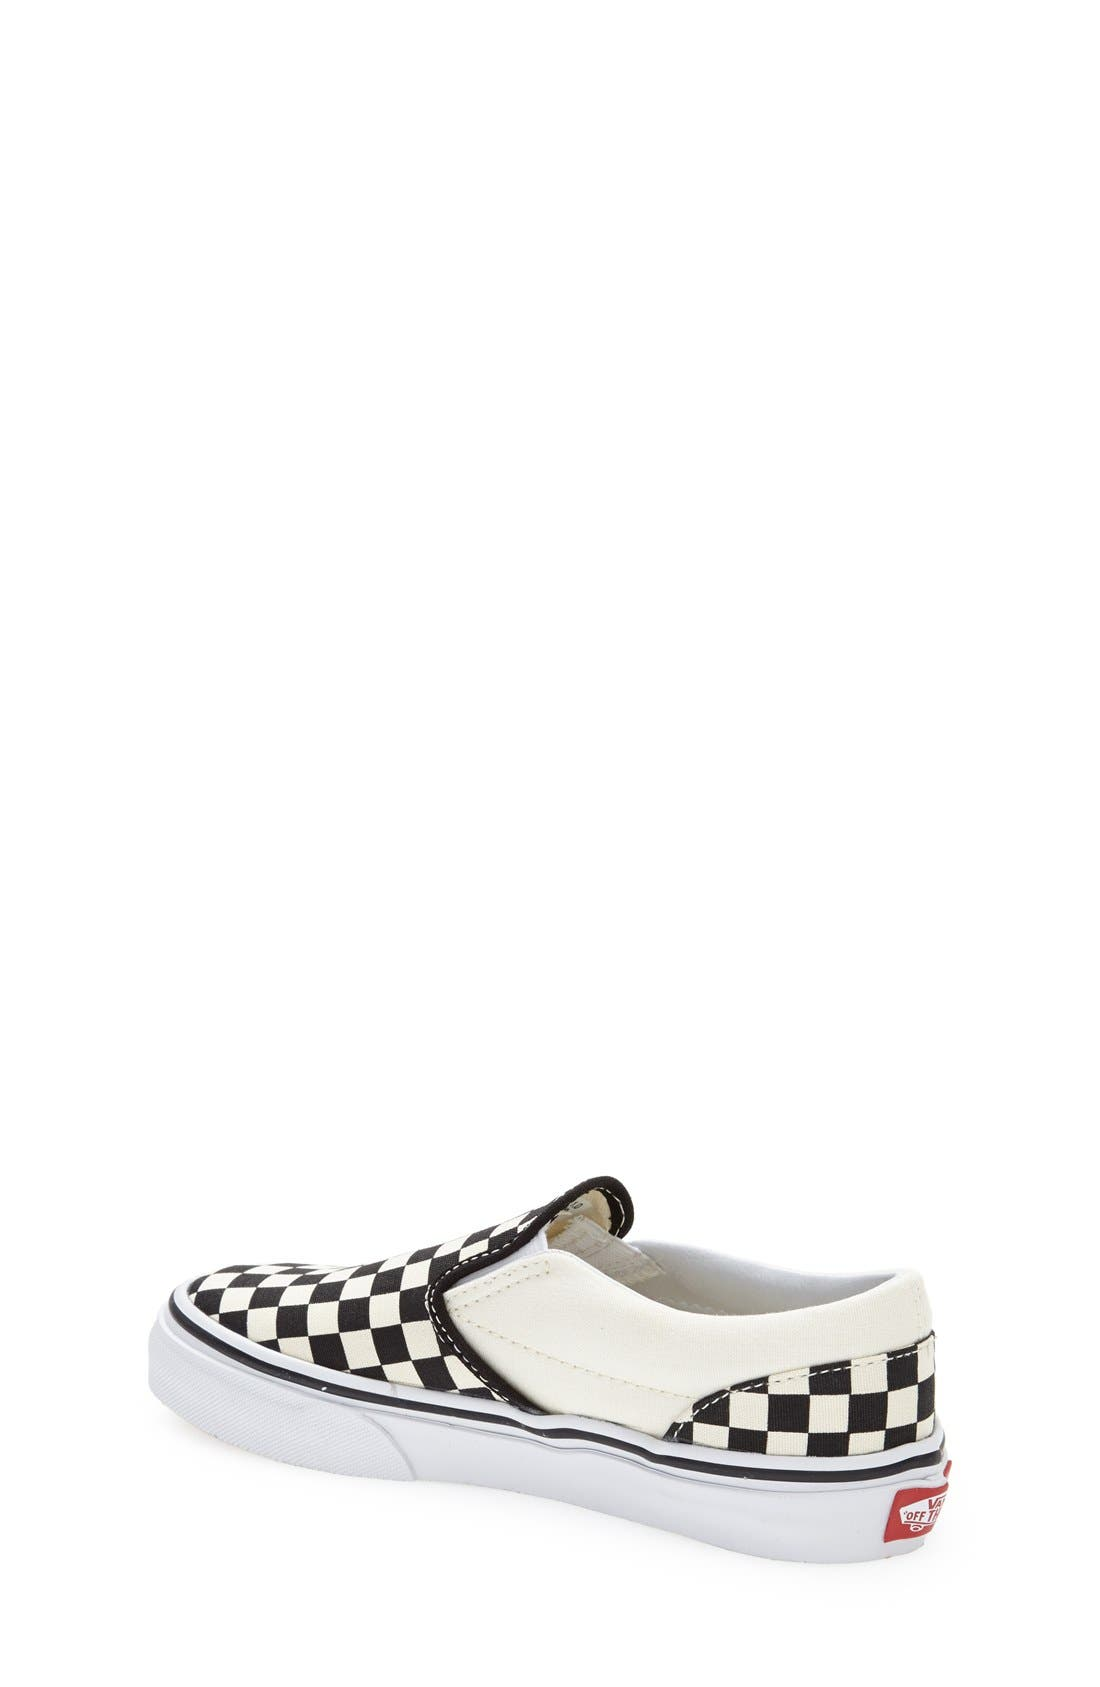 VANS, 'Classic - Checkerboard' Slip-On, Alternate thumbnail 6, color, BLACK/ WHITE CHECKERBOARD